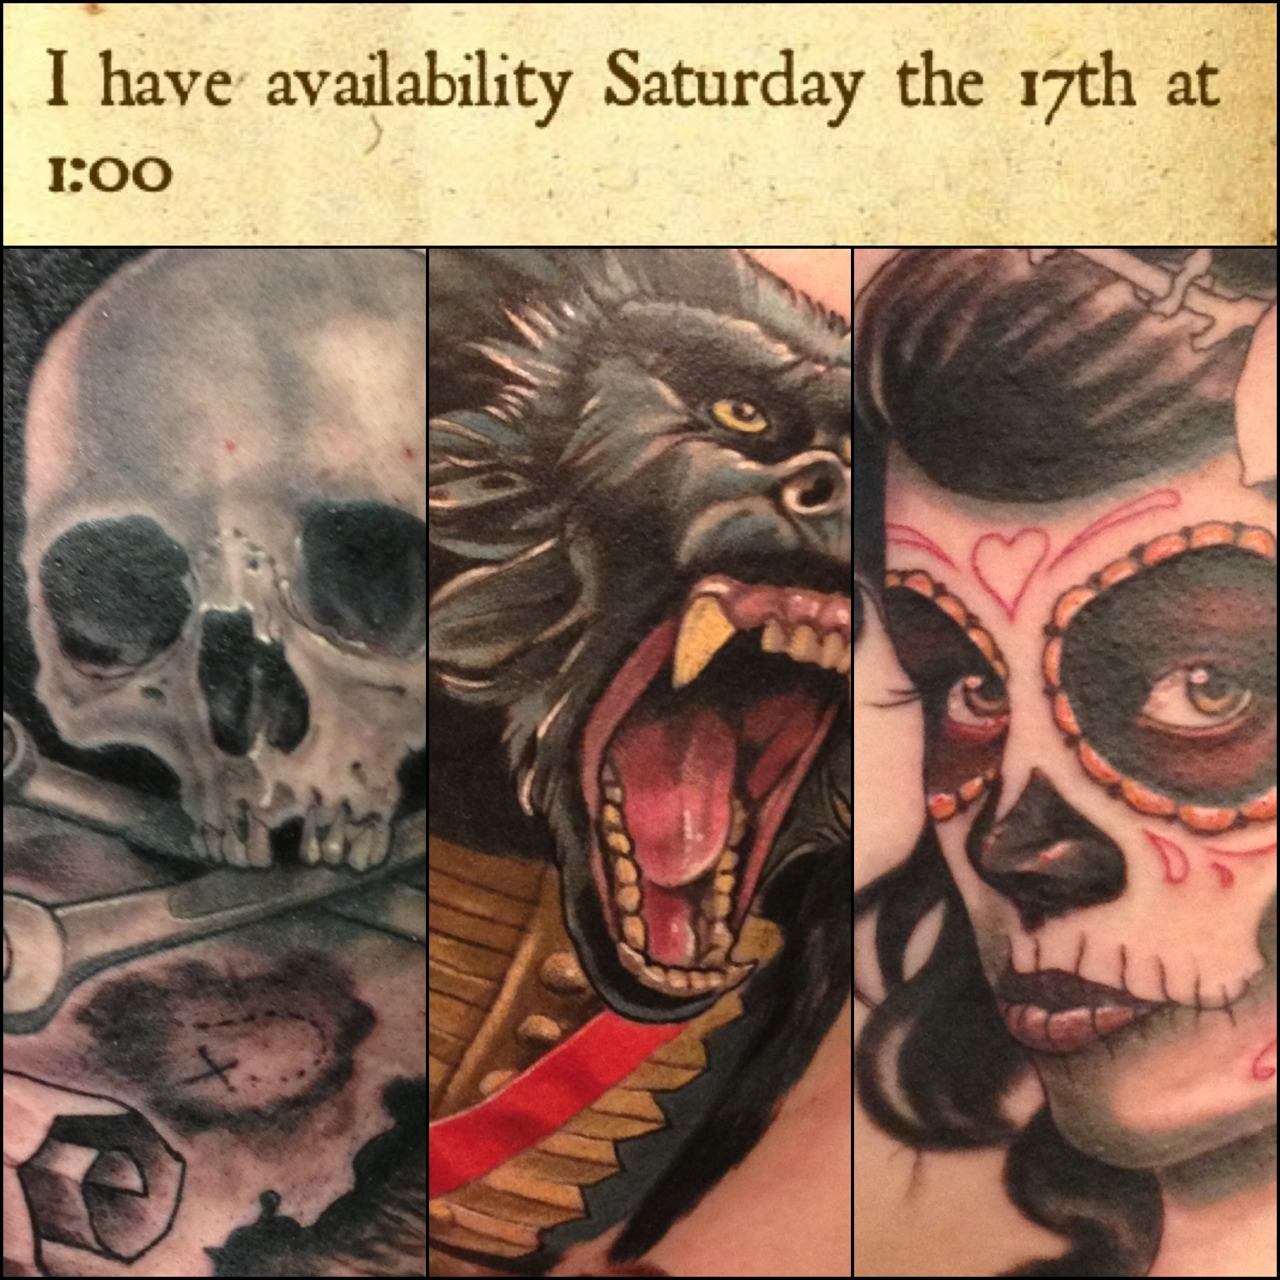 Weekend availability is limited.  I have one opening on Saturday the 17th.  Email Kurt.a.fagerland@gmail.com if you would like to get tattooed.